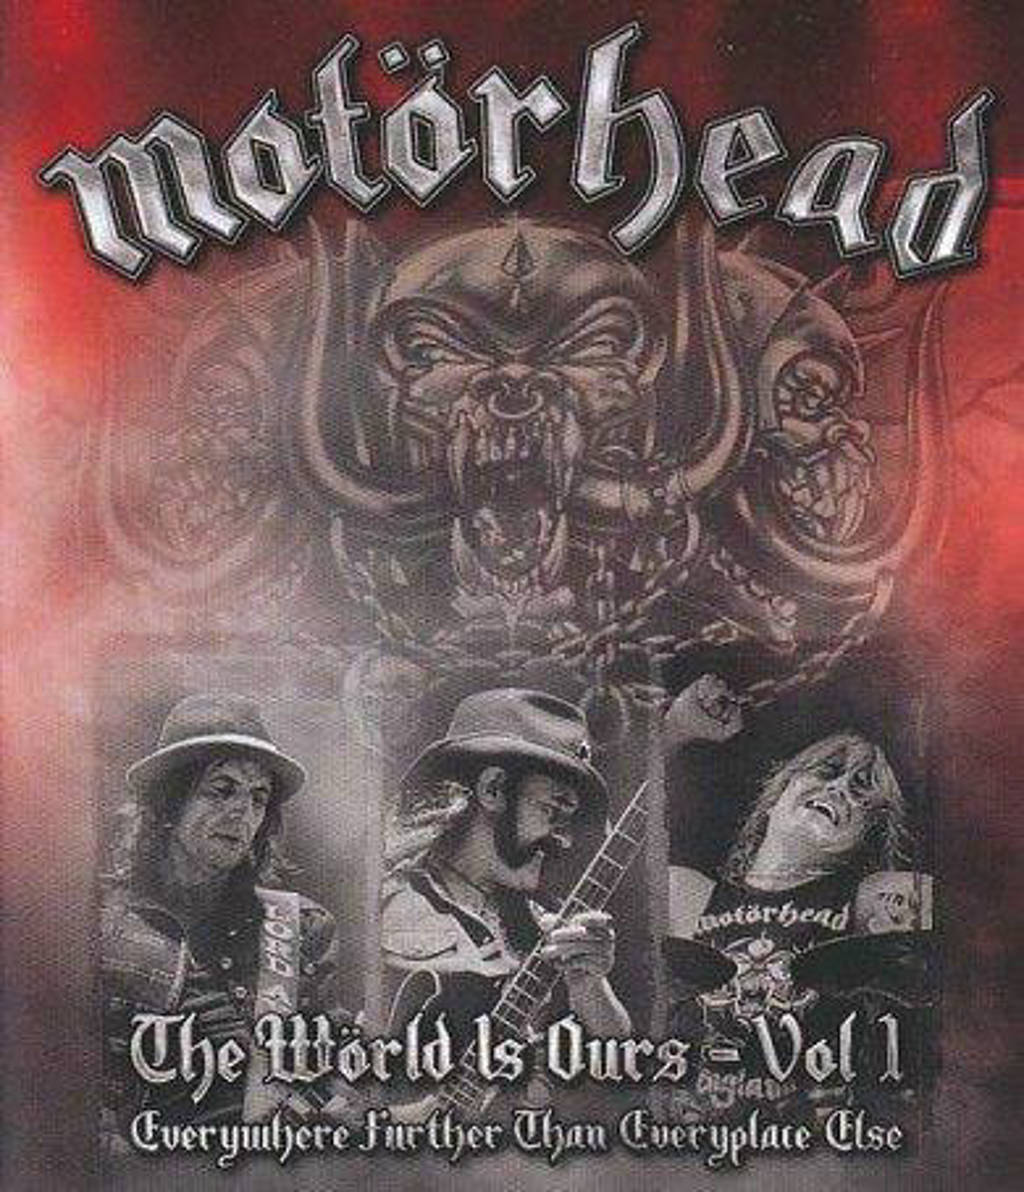 Motorhead - The World Is Ours - Vol 1 Ever (Blu-ray)